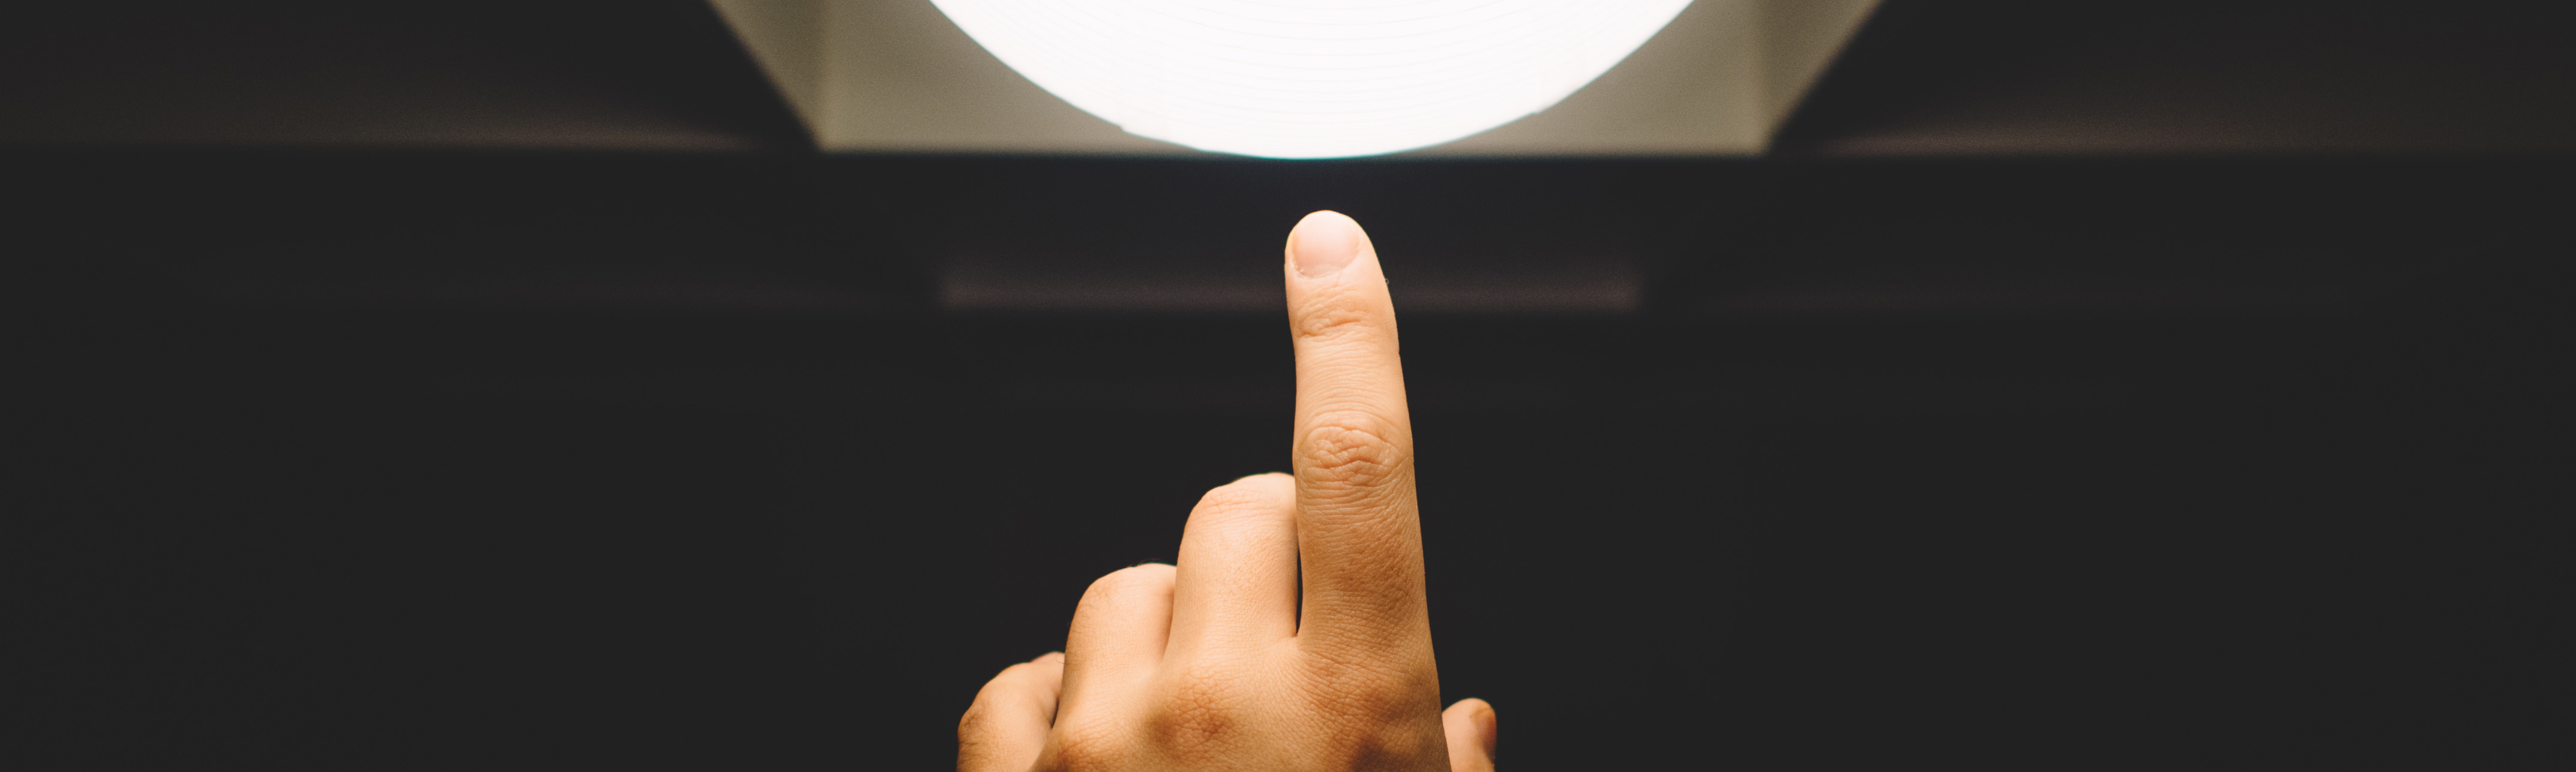 Finger pointing at a light-bulb in a darkened room, suggesting innovation.